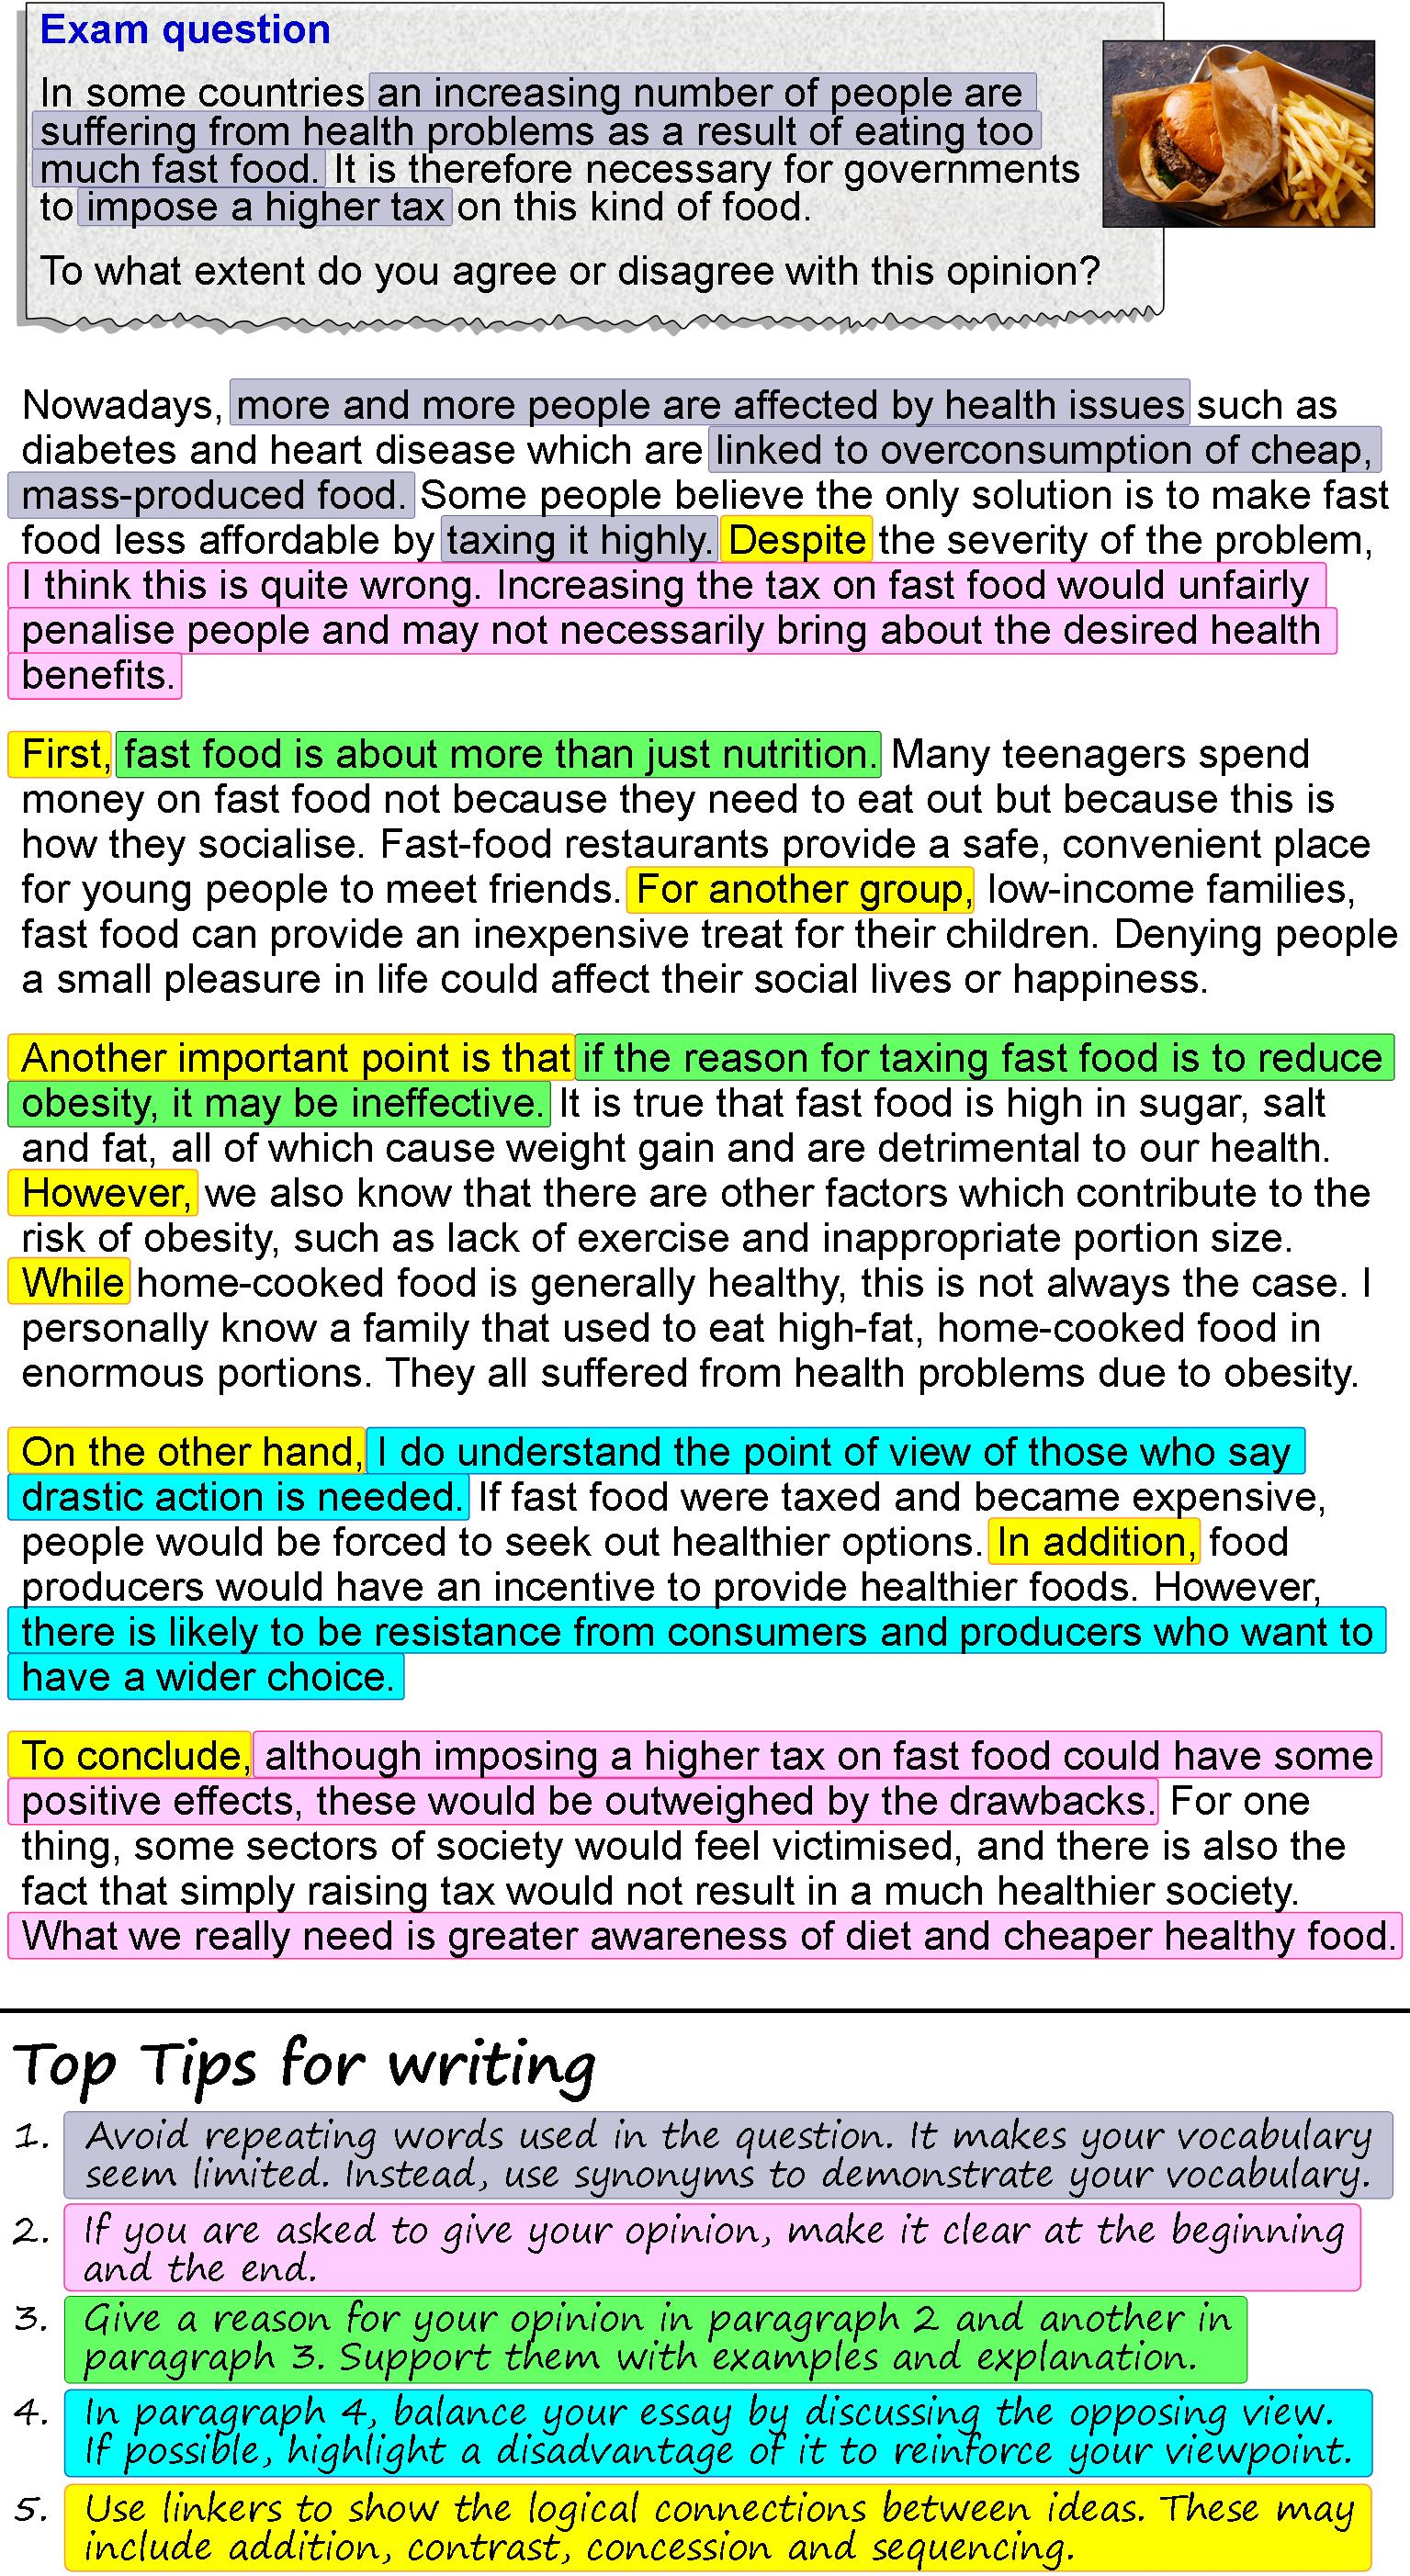 001 Opinion Essay About Fast Food Example An 4 Unbelievable Is A Good Alternative To Cooking For Yourself British Council Full